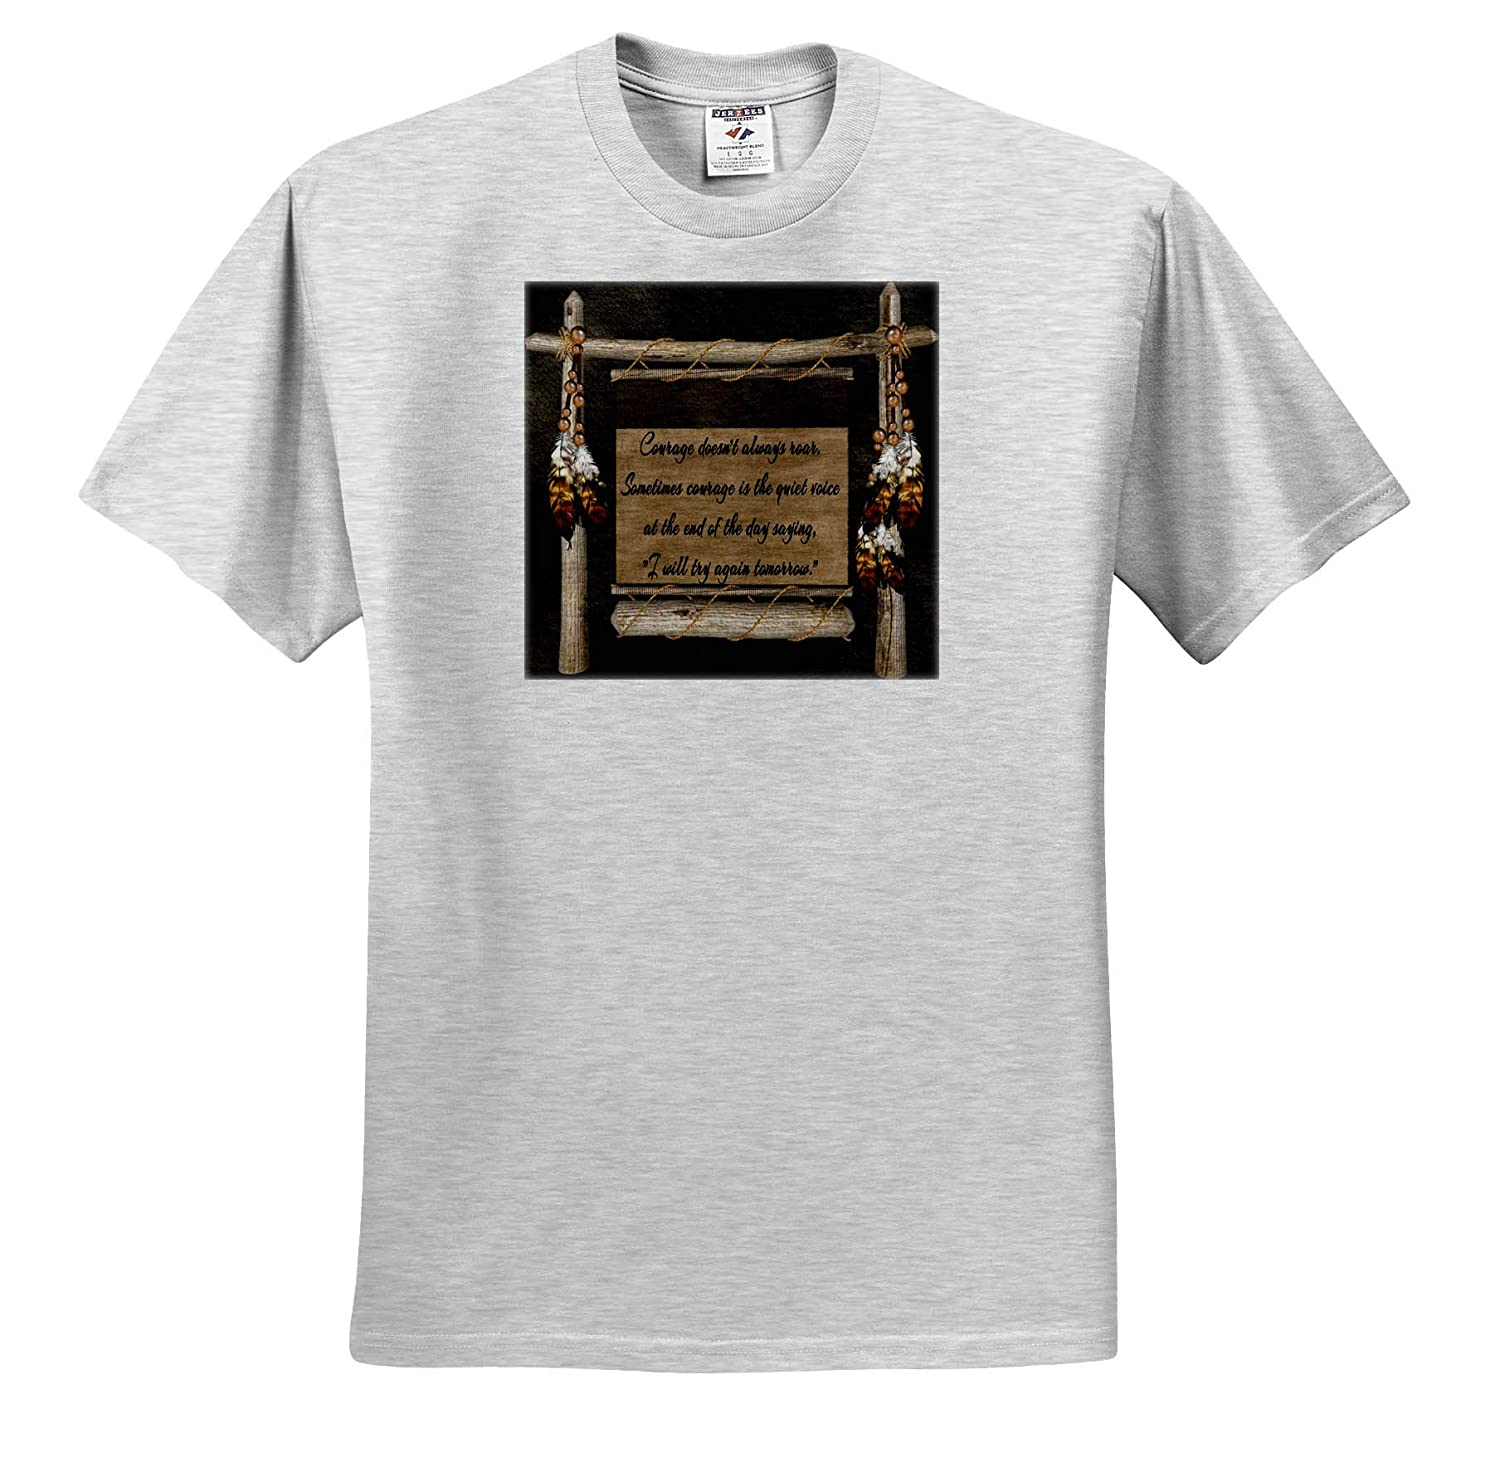 Adult T-Shirt XL Indian Scroll and Motivational Courage Poem 3dRose SpiritualAwakenings Words to Live by ts/_317034